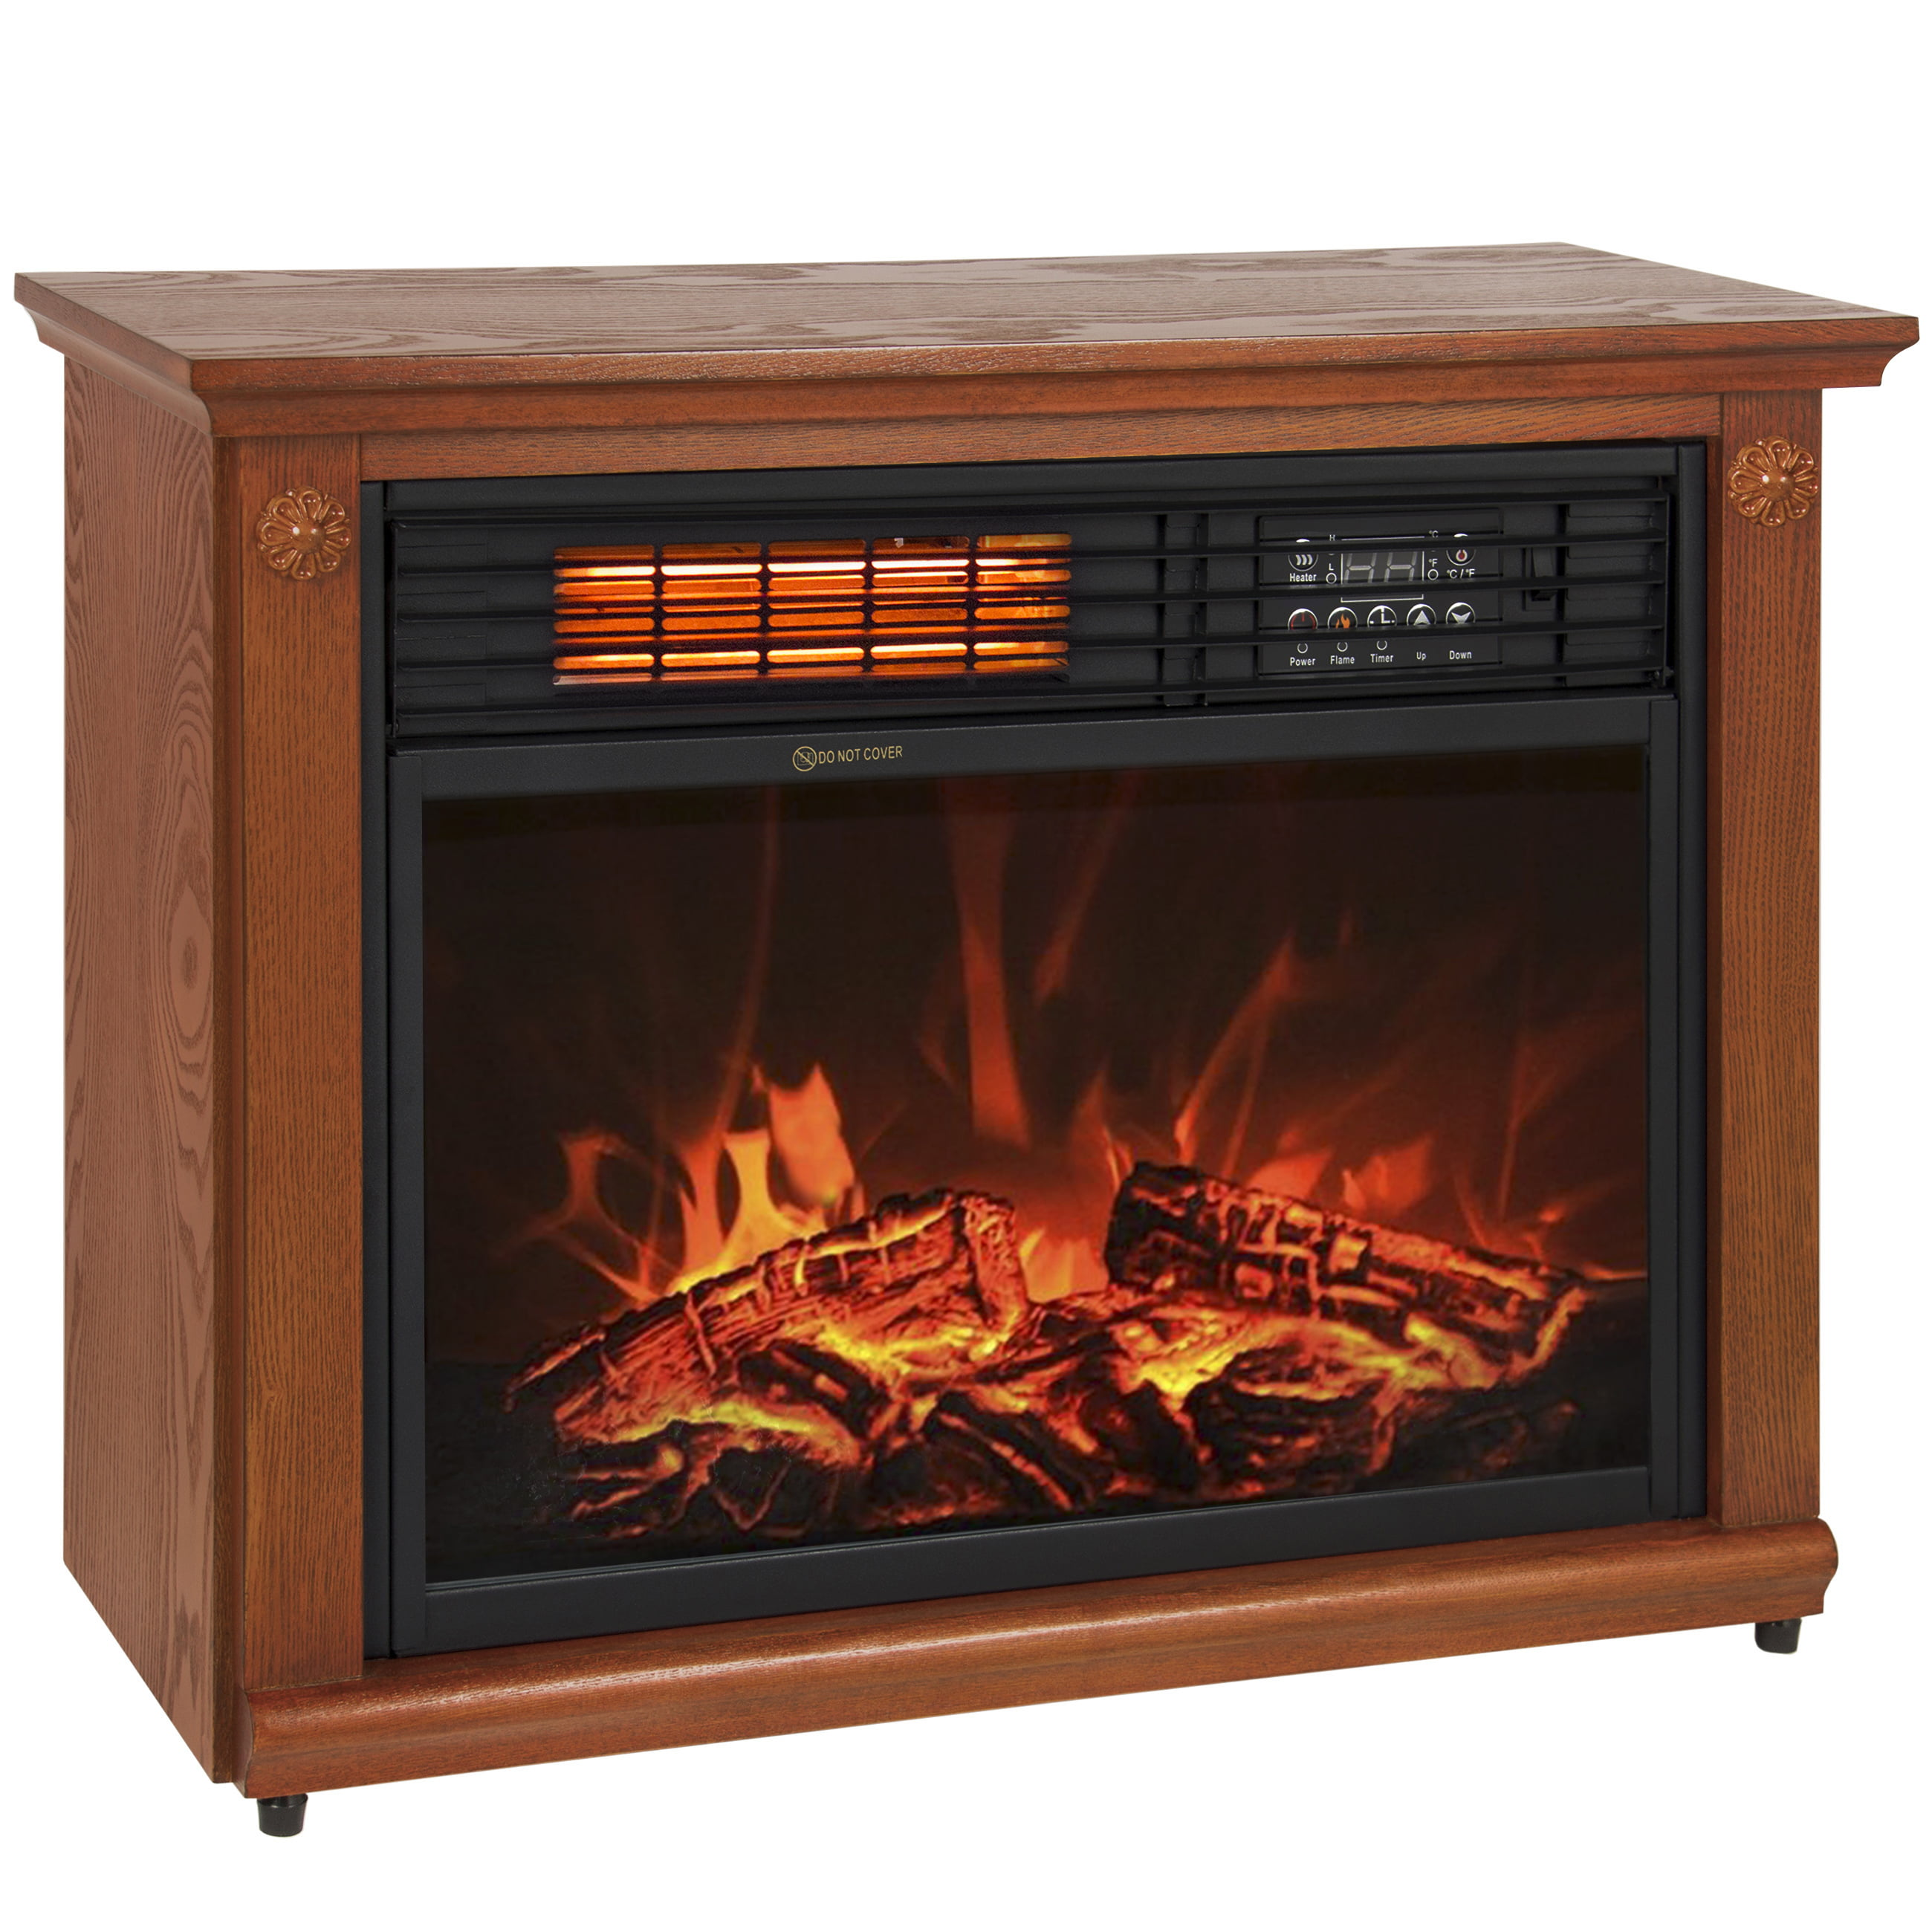 Large Room Infrared Quartz Electric Fireplace Heater Honey Oak ...